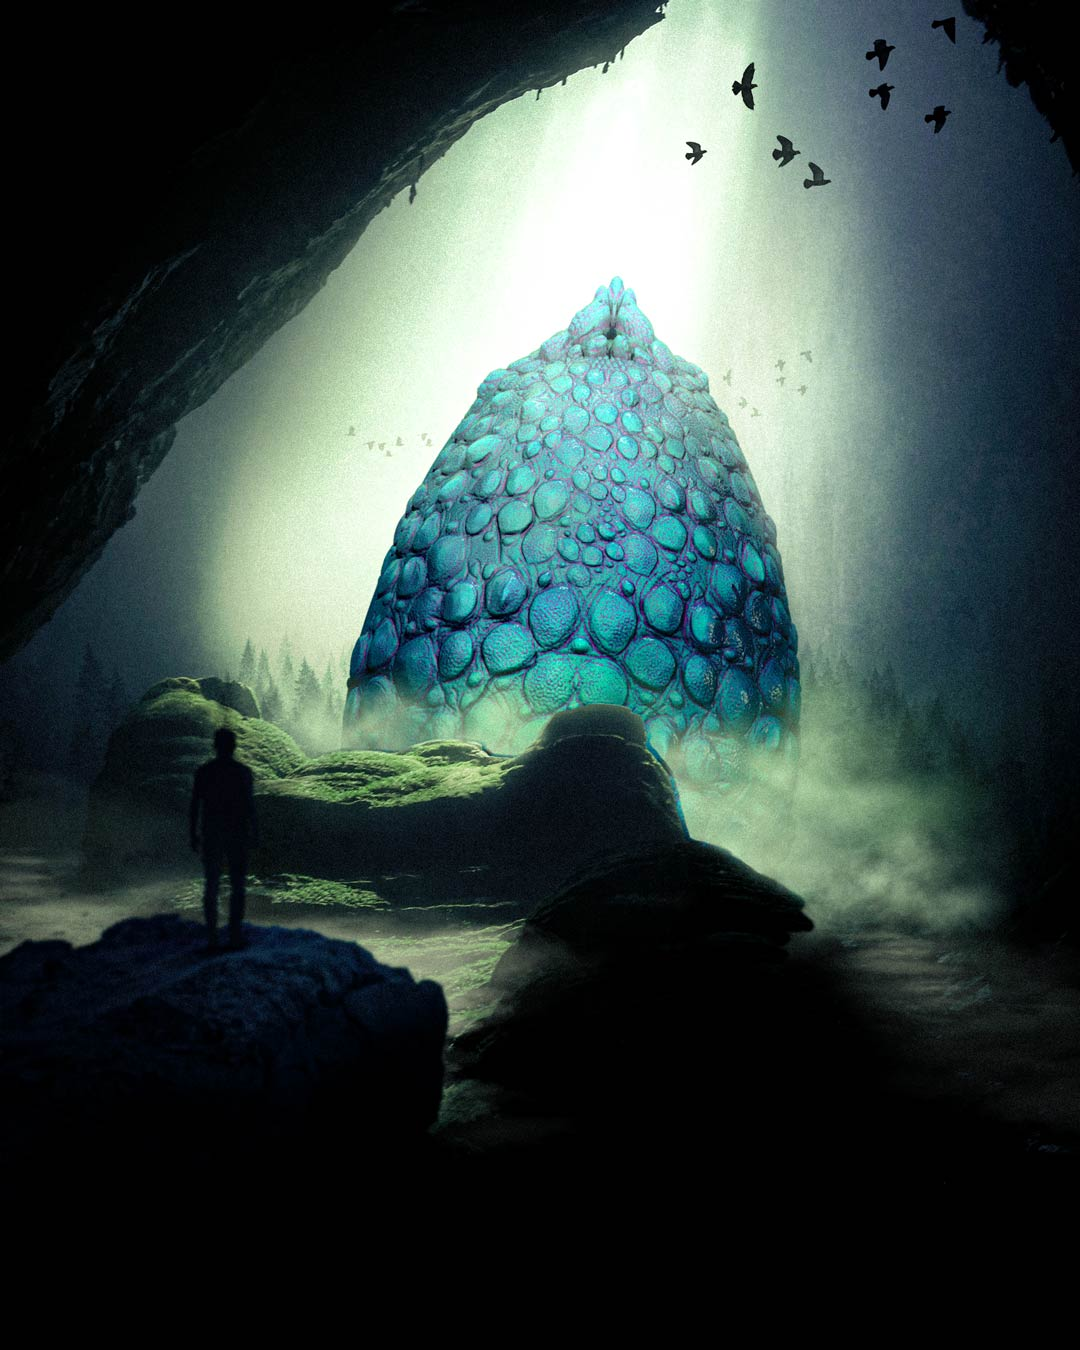 Dragon Egg in Cave designed by Adam Ingle